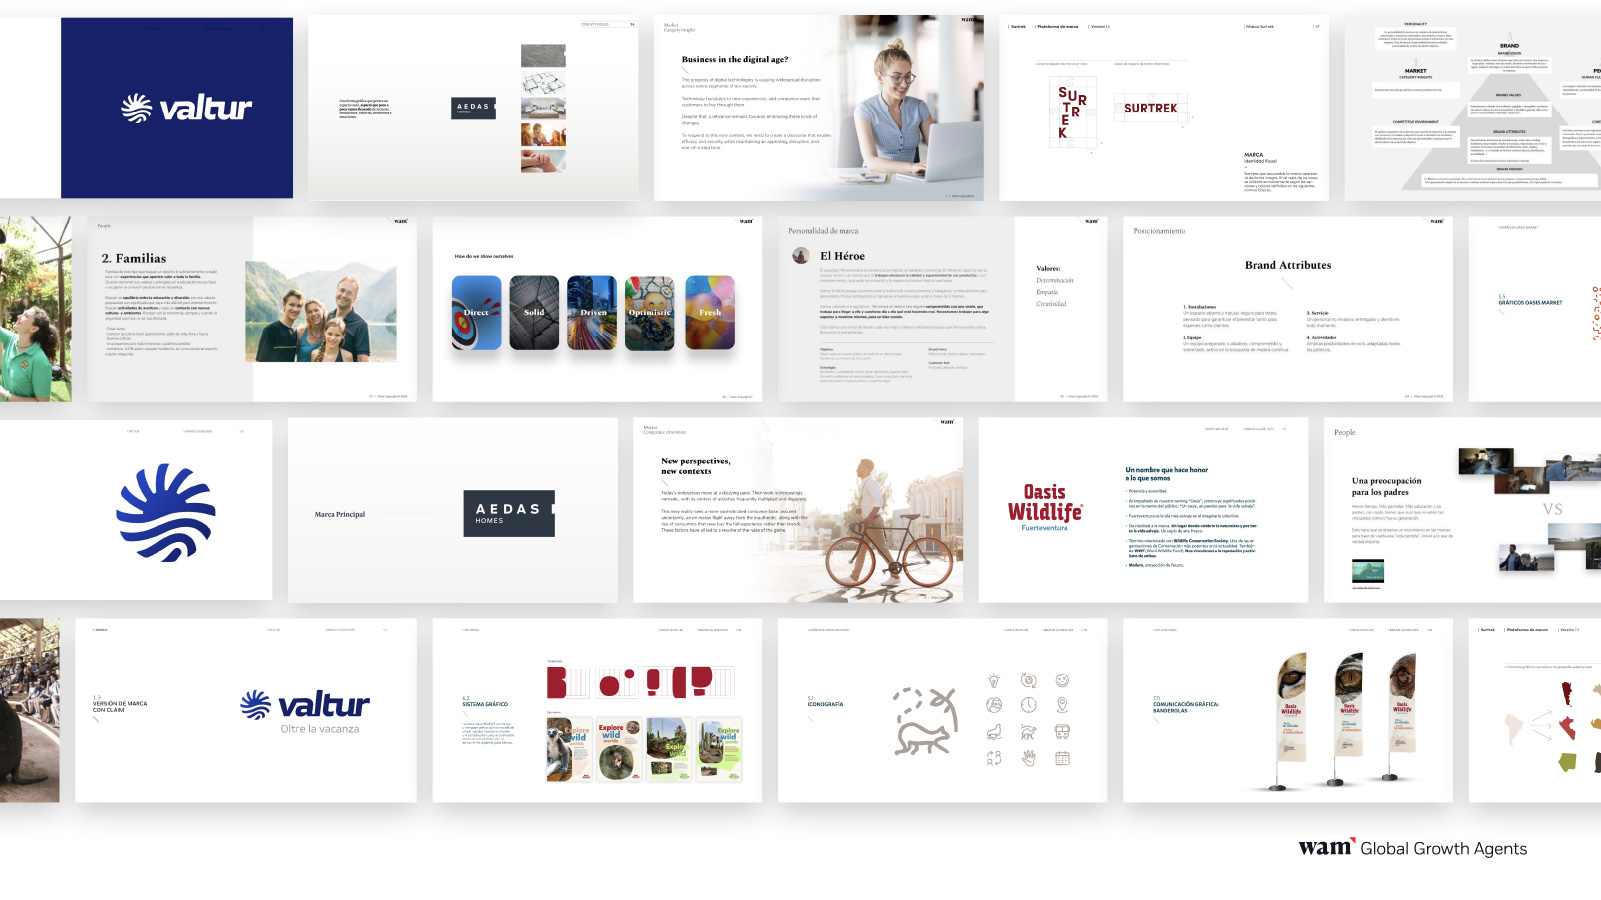 Branding and corporate image for business success